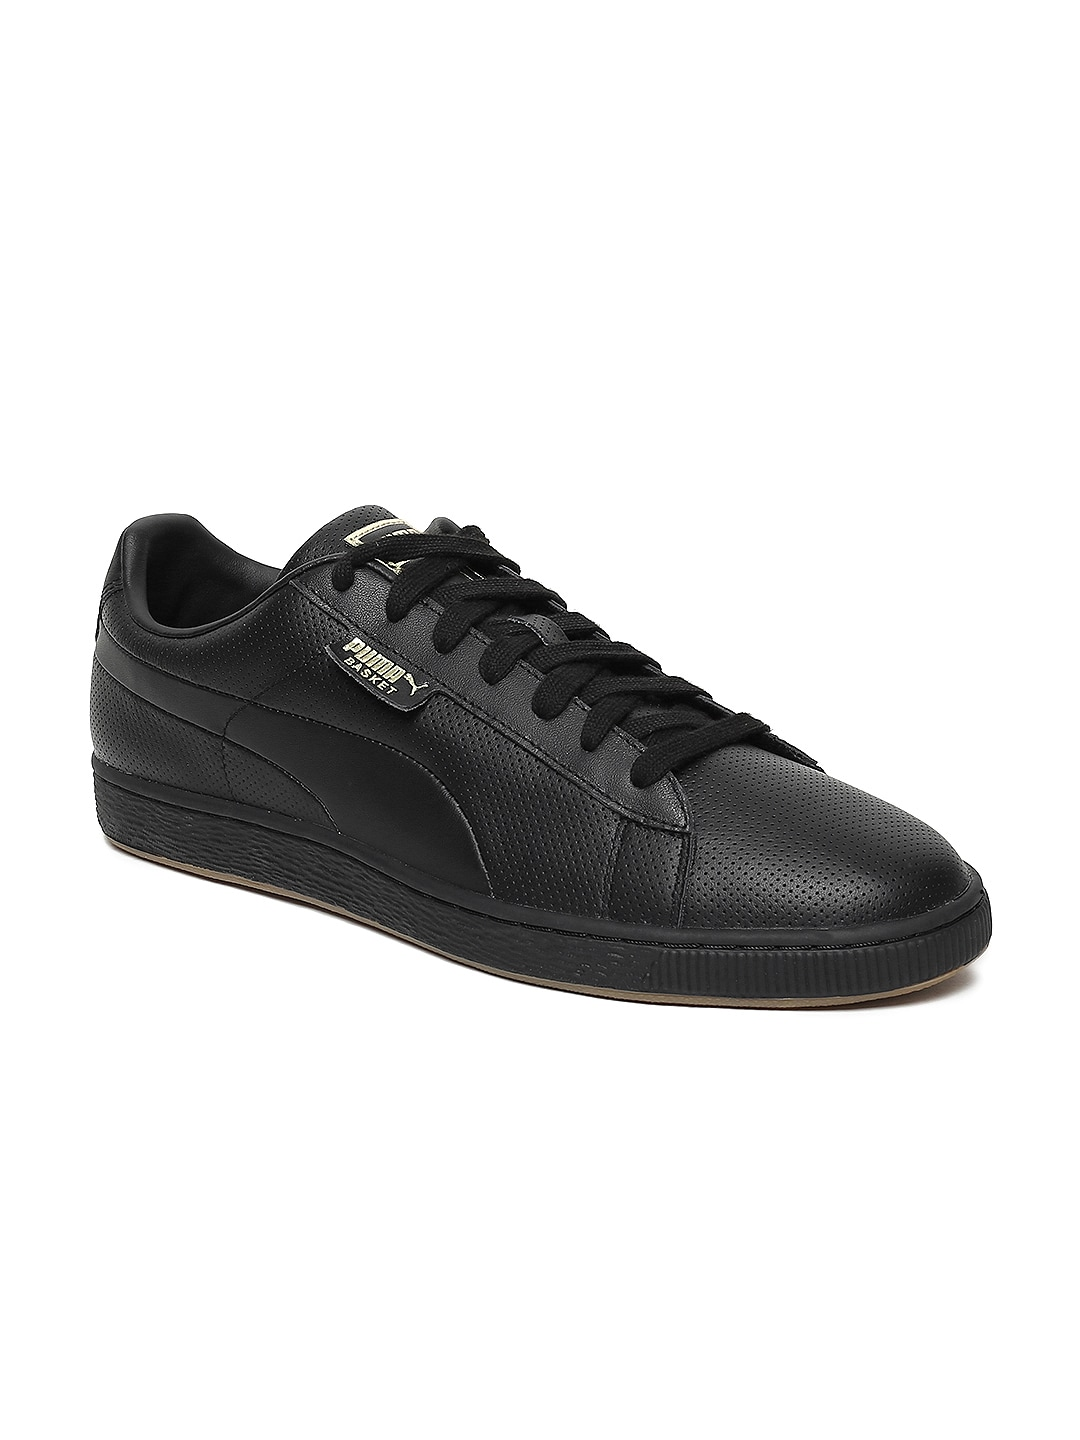 b79066227209 Puma Unisex Black Basket Classic Gum Leather Sneakers